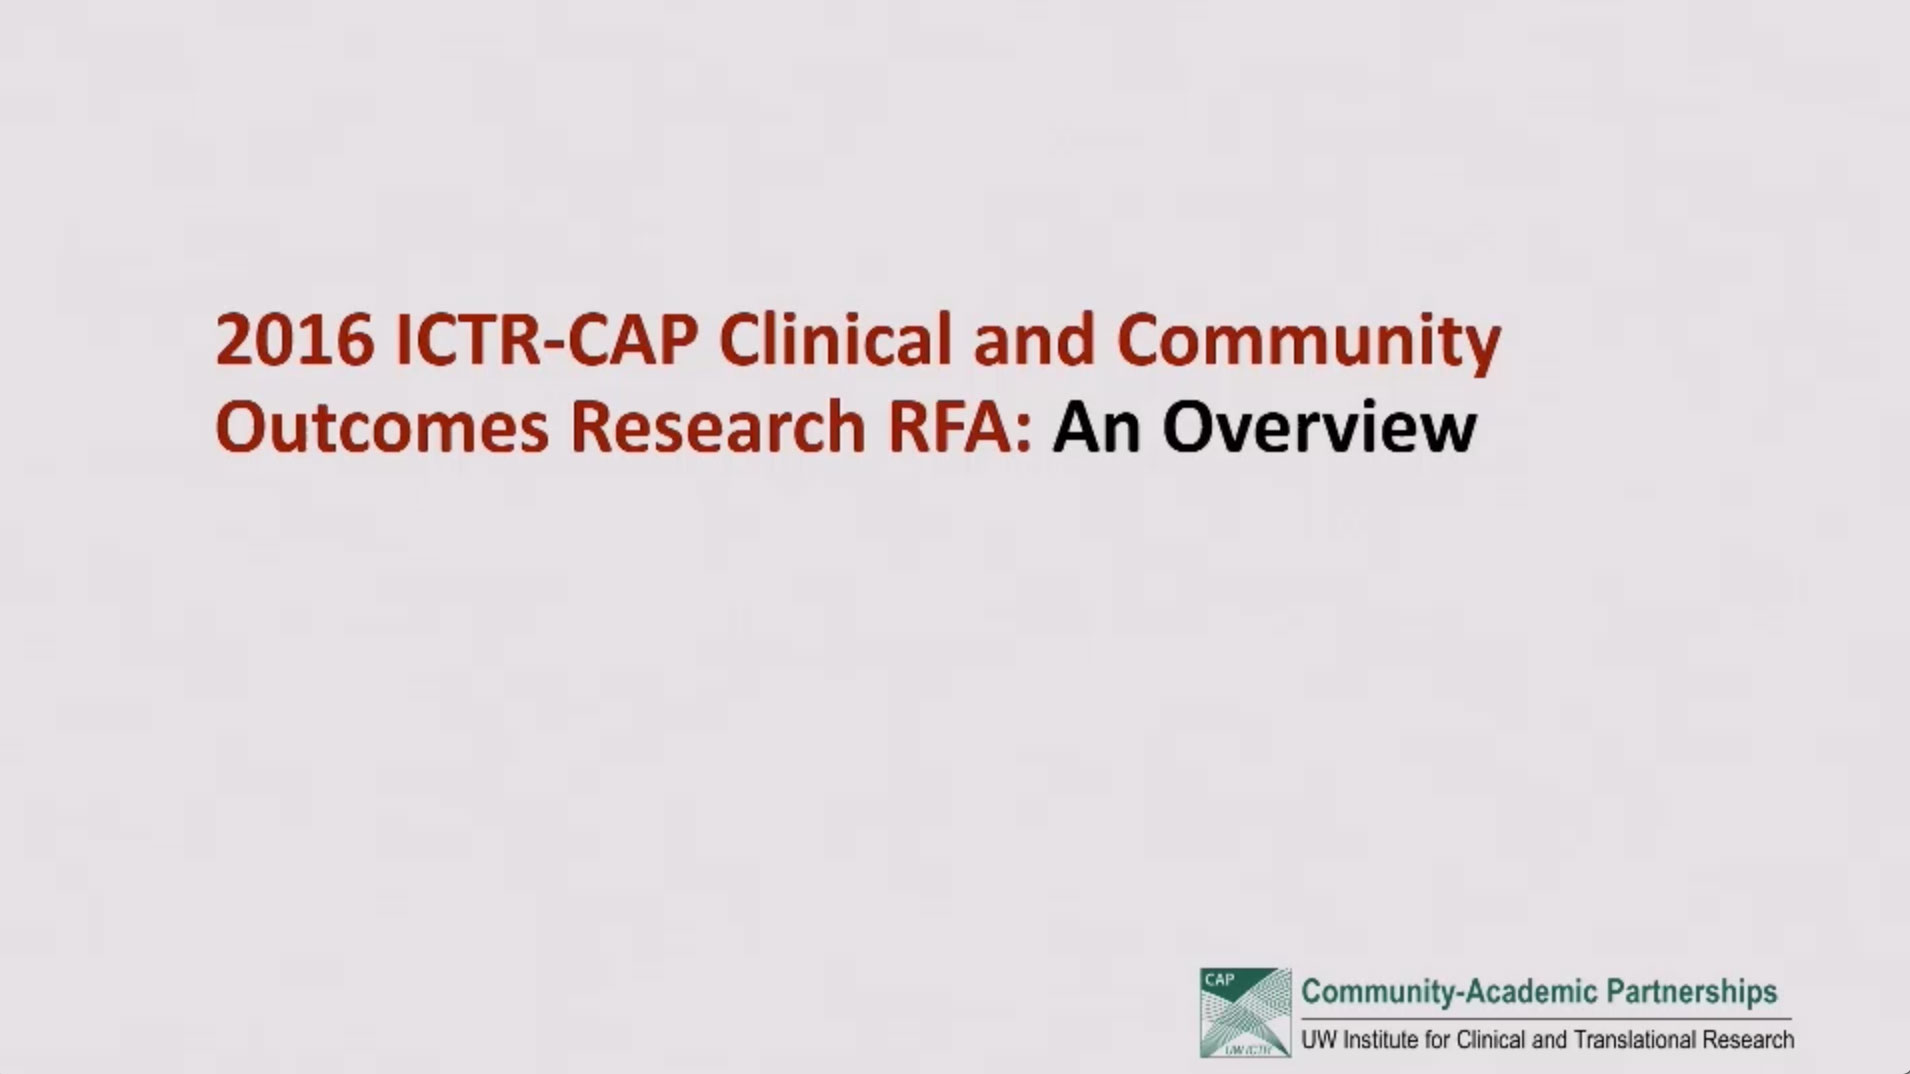 Picture from 2016 ICTR-CAP Clinical and Community Outcomes Research RFA: An Overview video